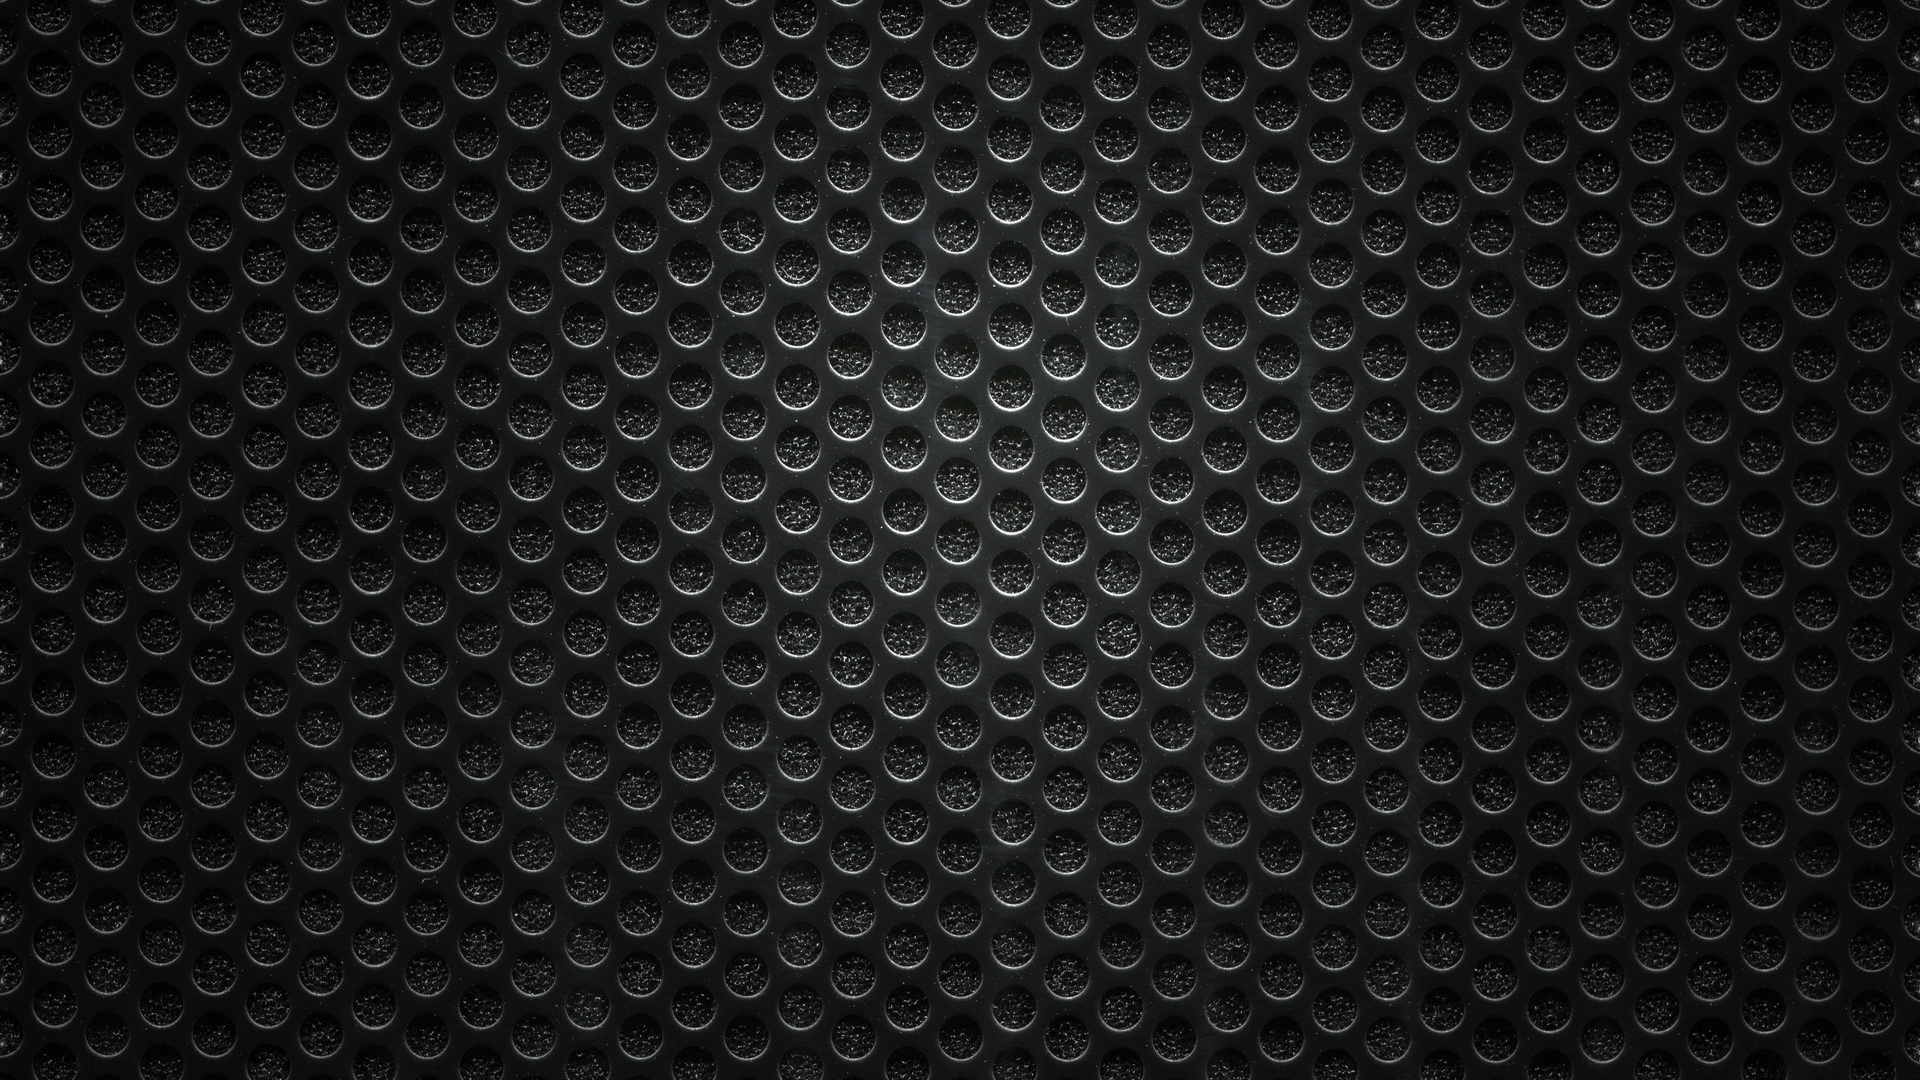 Download Wallpaper 1920x1080 Black Background Texture